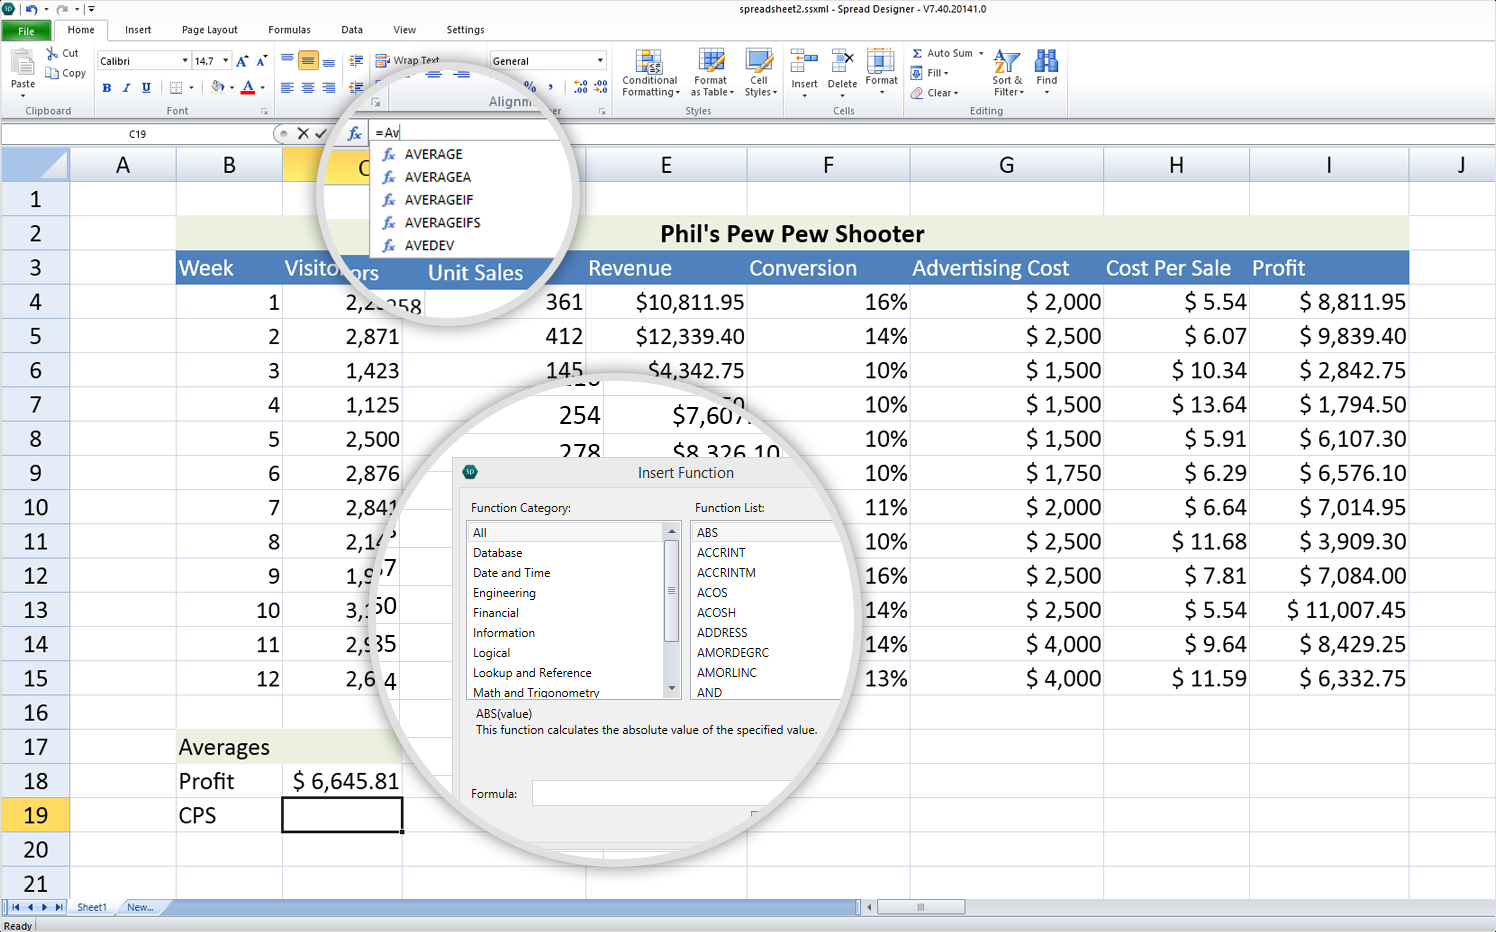 C Spreadsheet Control Spreadsheet Downloa Cool Math Games Craigslist Capital One